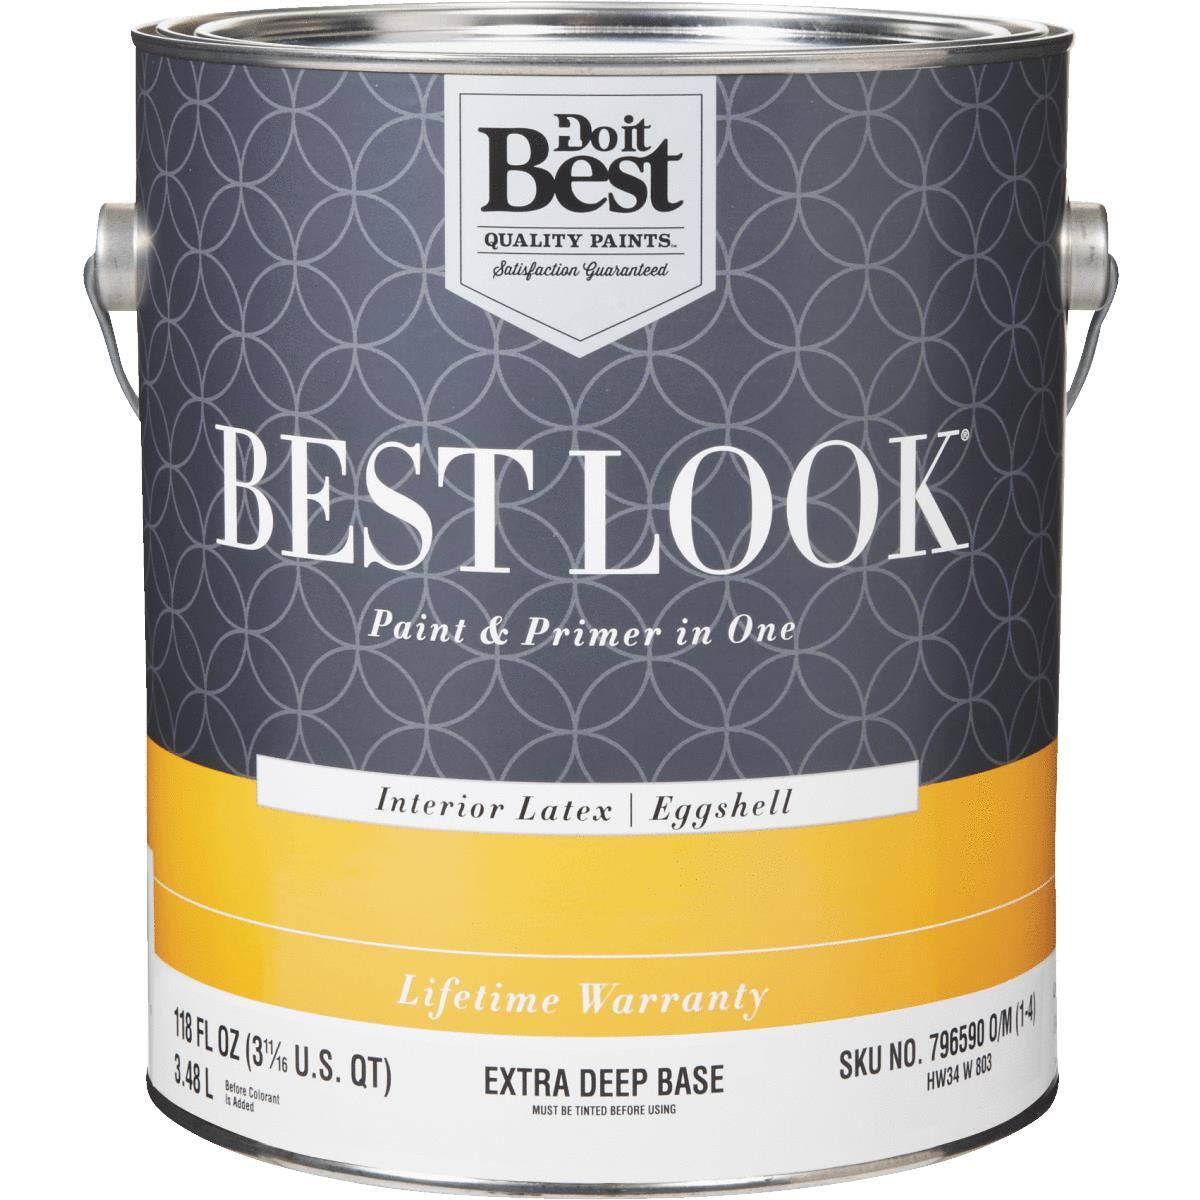 Best Look Paint and Primer in One Enamel - Interior Latex, Eggshell, 3.48L